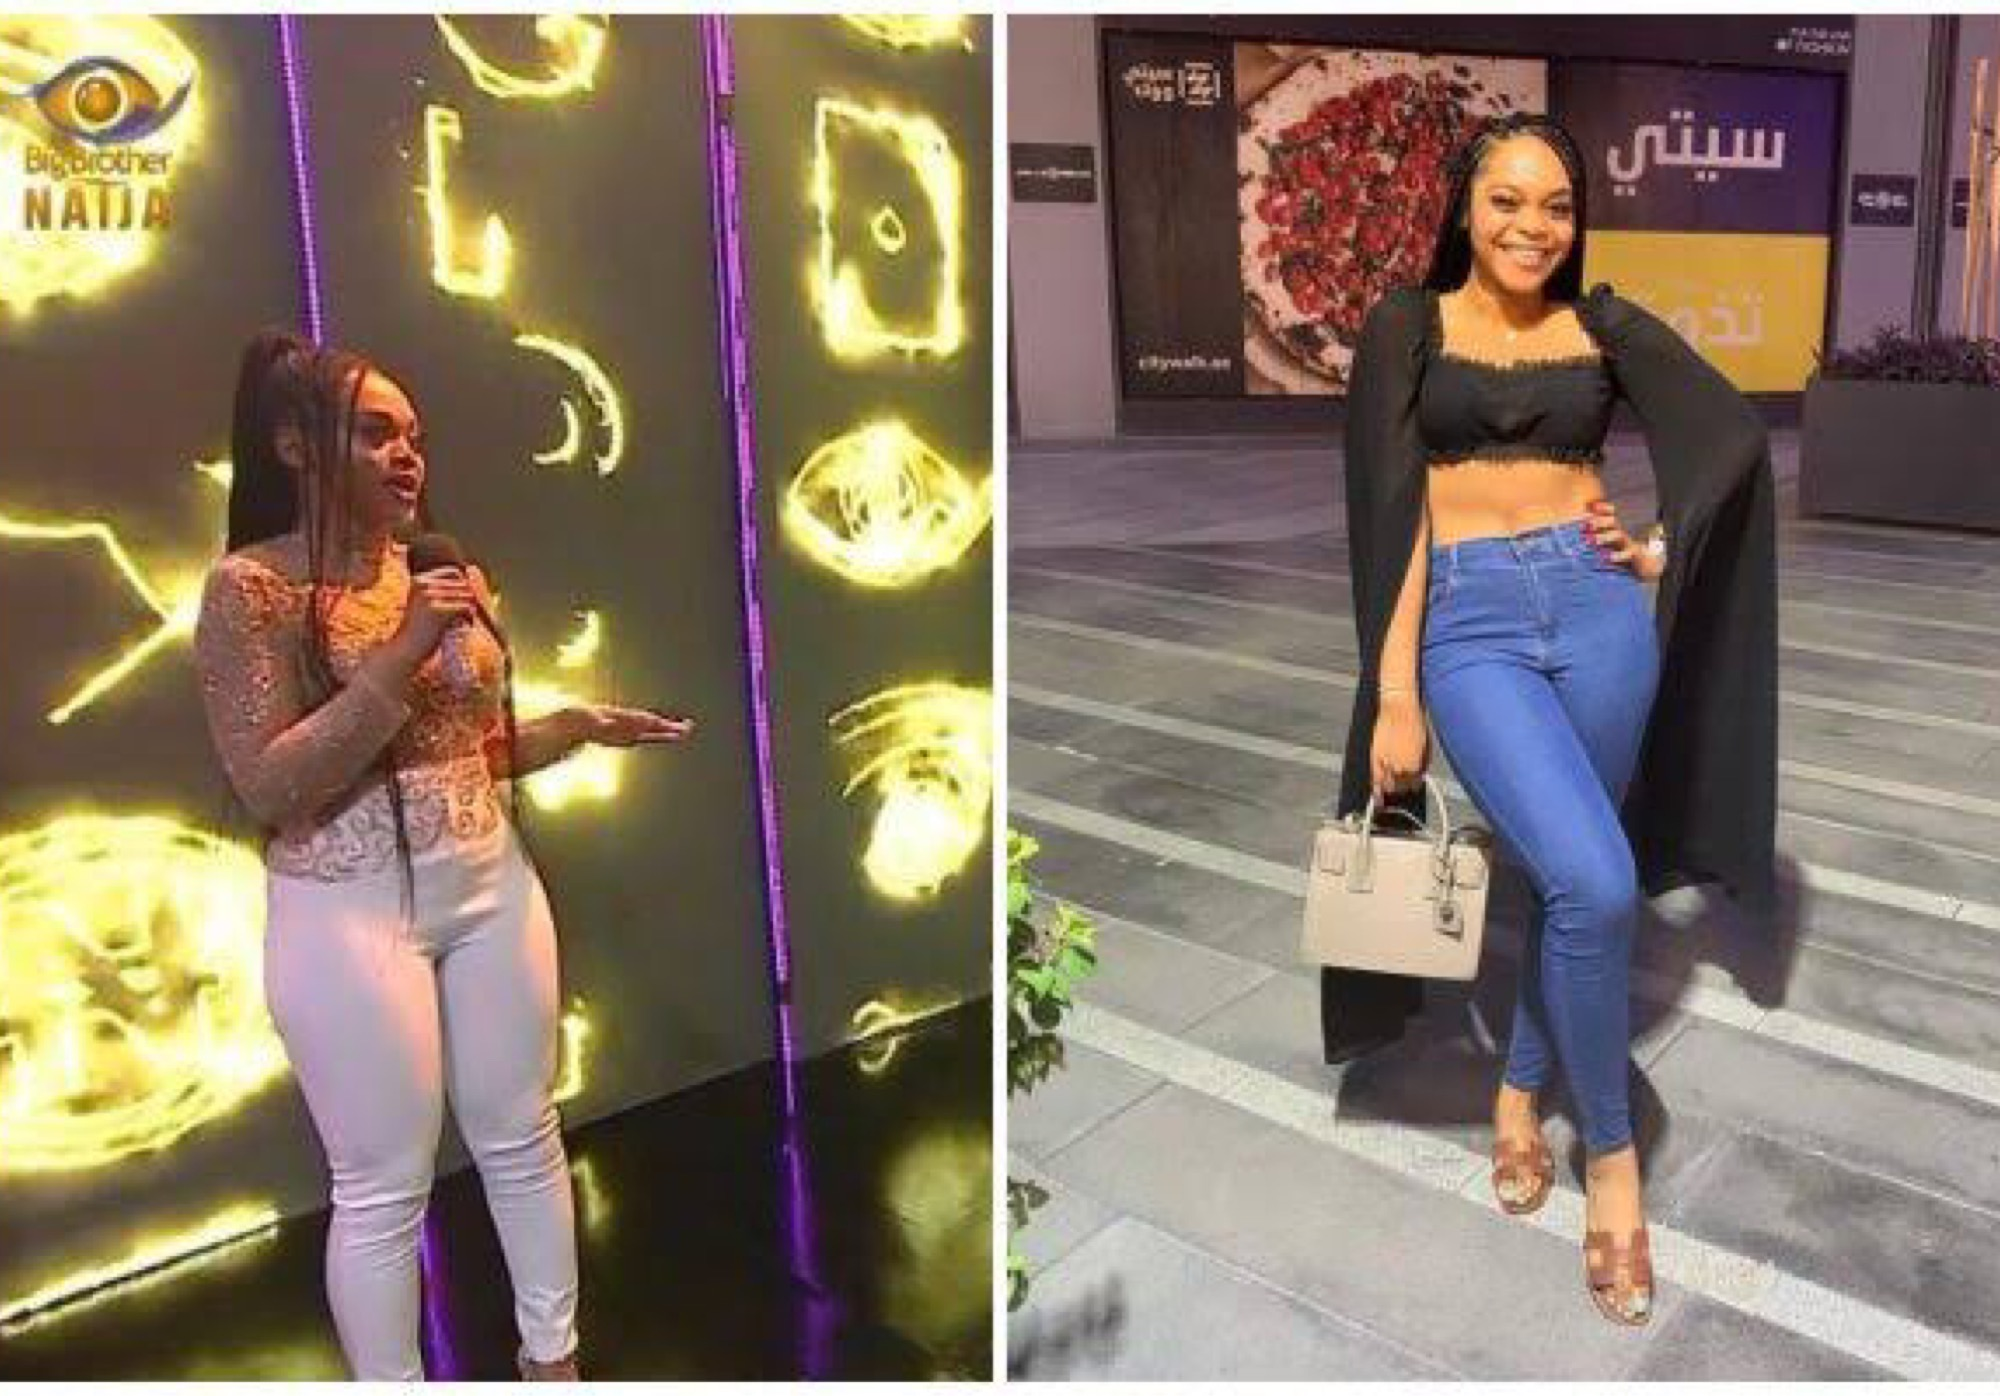 'Enough With The Beauty Comparism' - BBNaija's Lilo Tells Fans